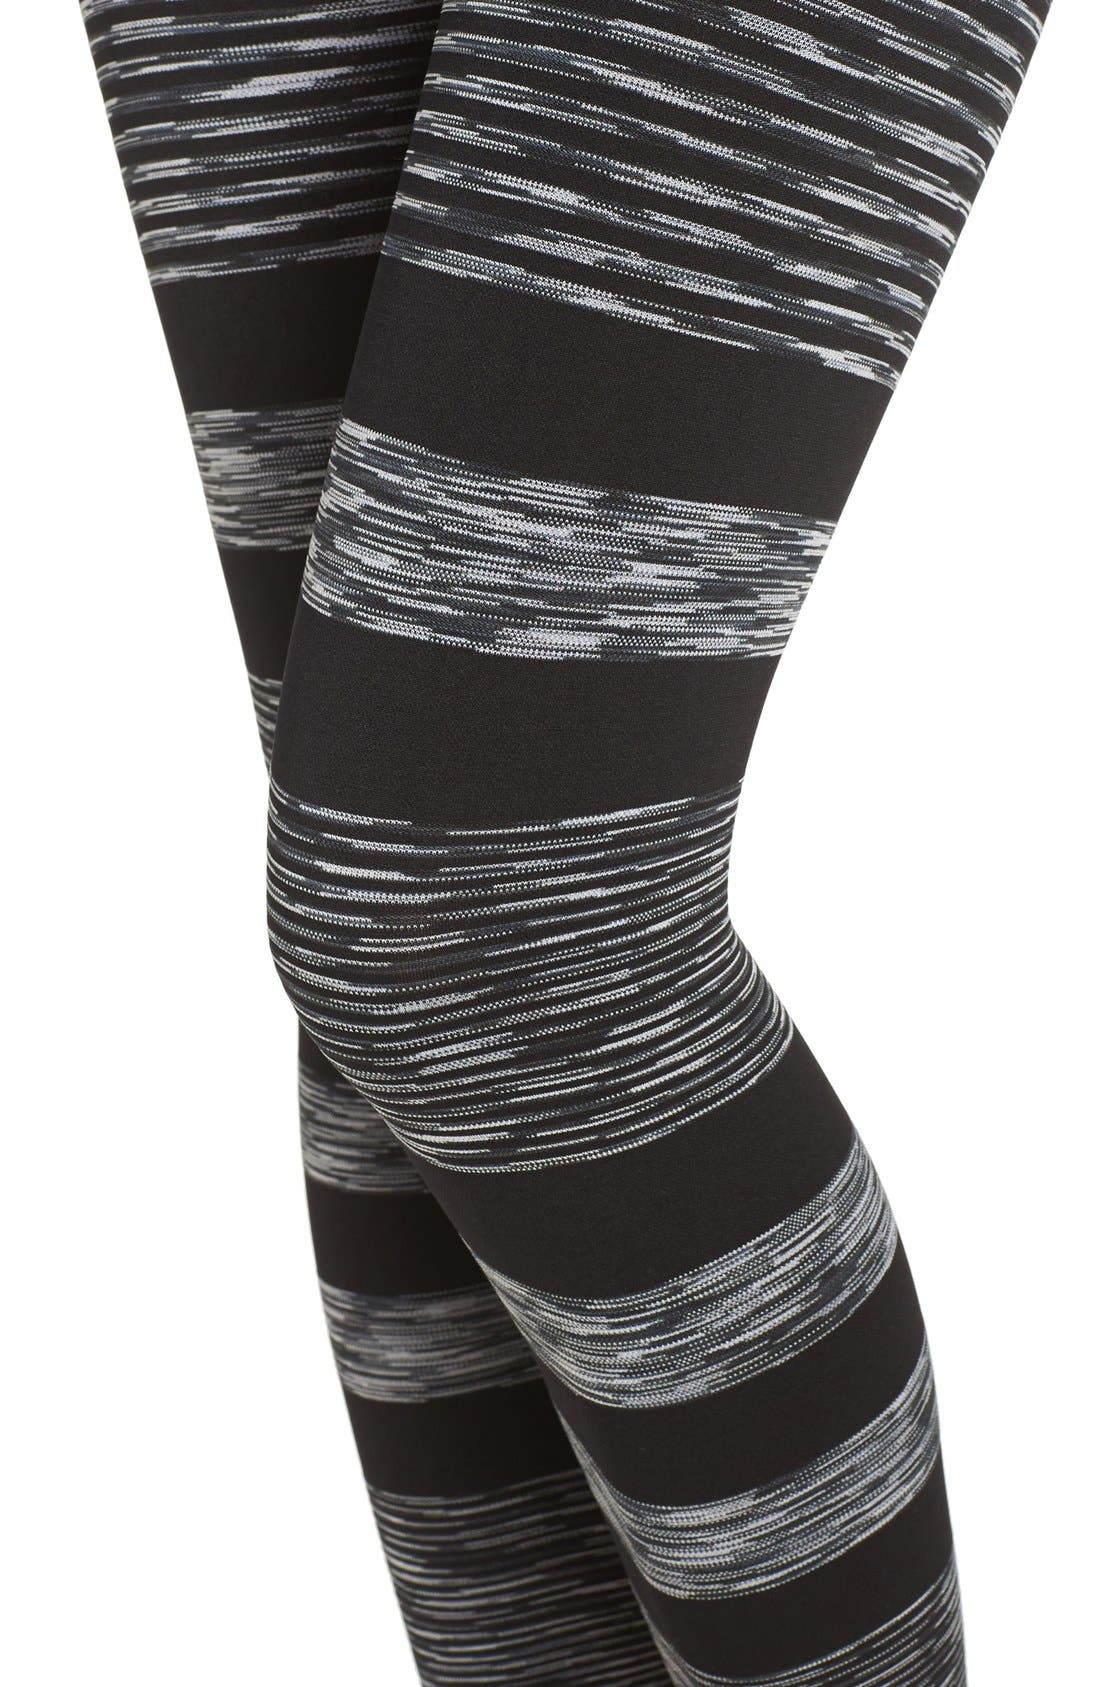 'Raise the Bar' High Waist Seamless Leggings,                             Alternate thumbnail 4, color,                             Black/ Litho